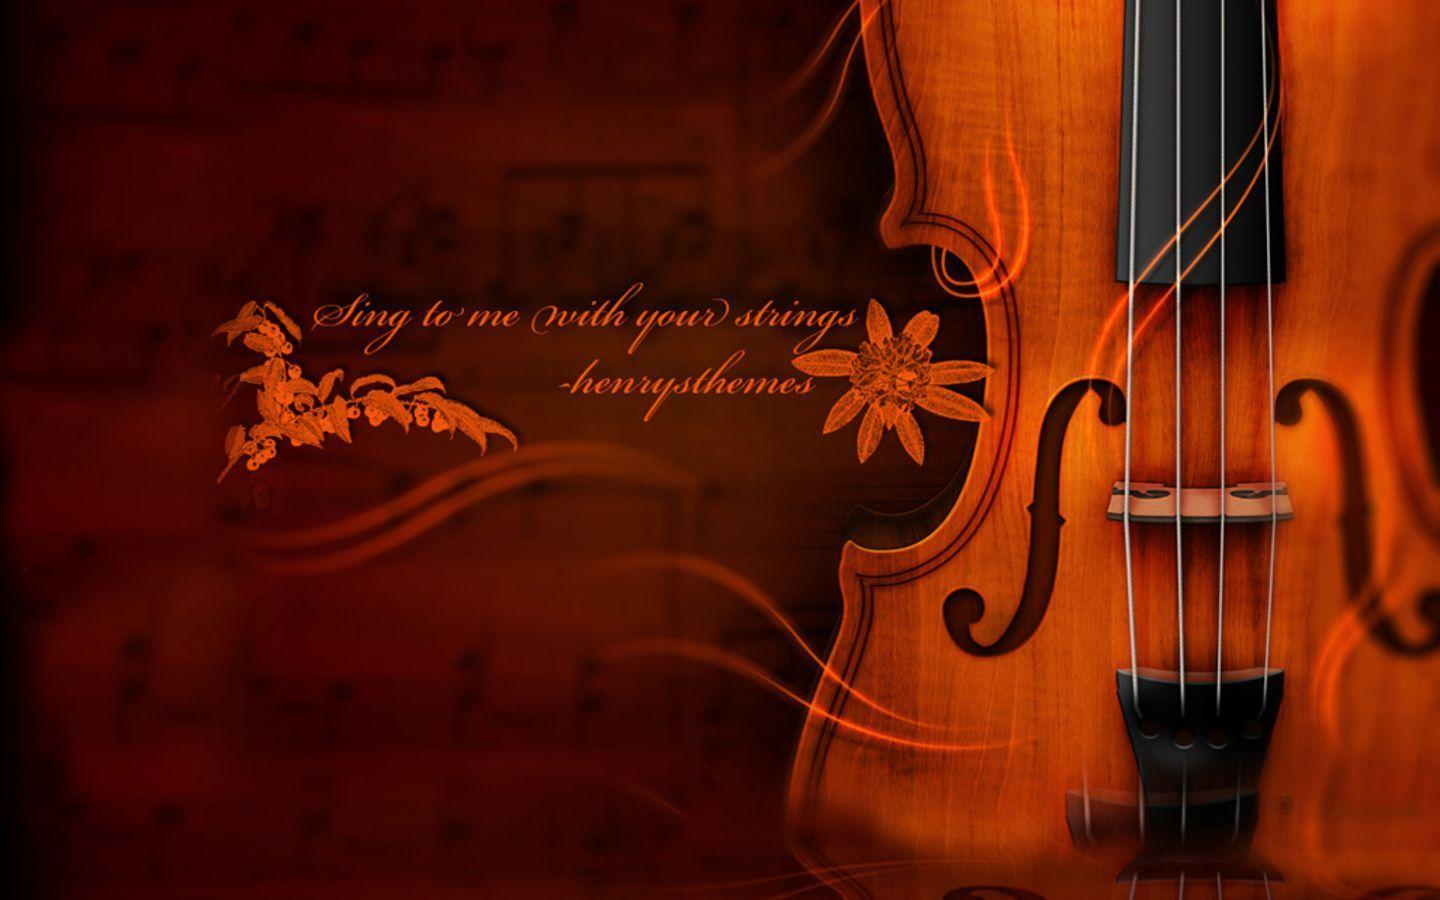 Violin - Music Wallpaper (31870311) - Fanpop